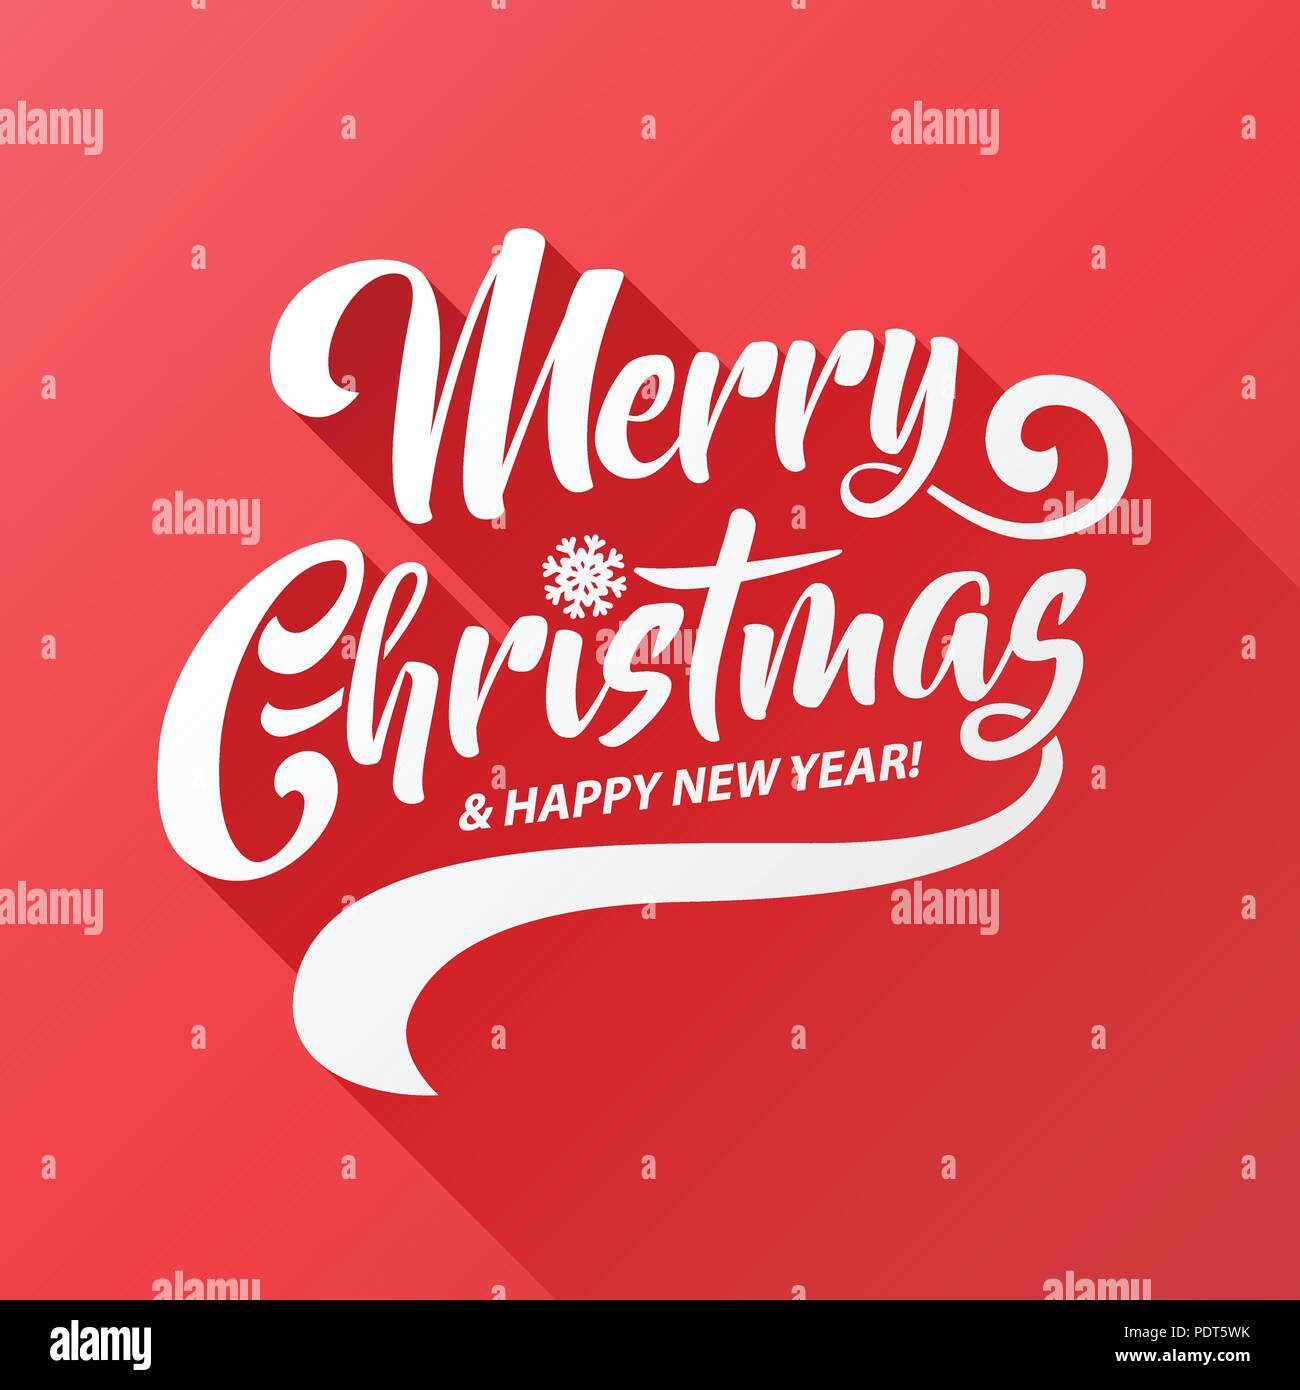 Merry christmas vector text calligraphic lettering long shadow merry christmas vector text calligraphic lettering long shadow design card template creative typography for holiday greeting gift poster calligraphy m4hsunfo